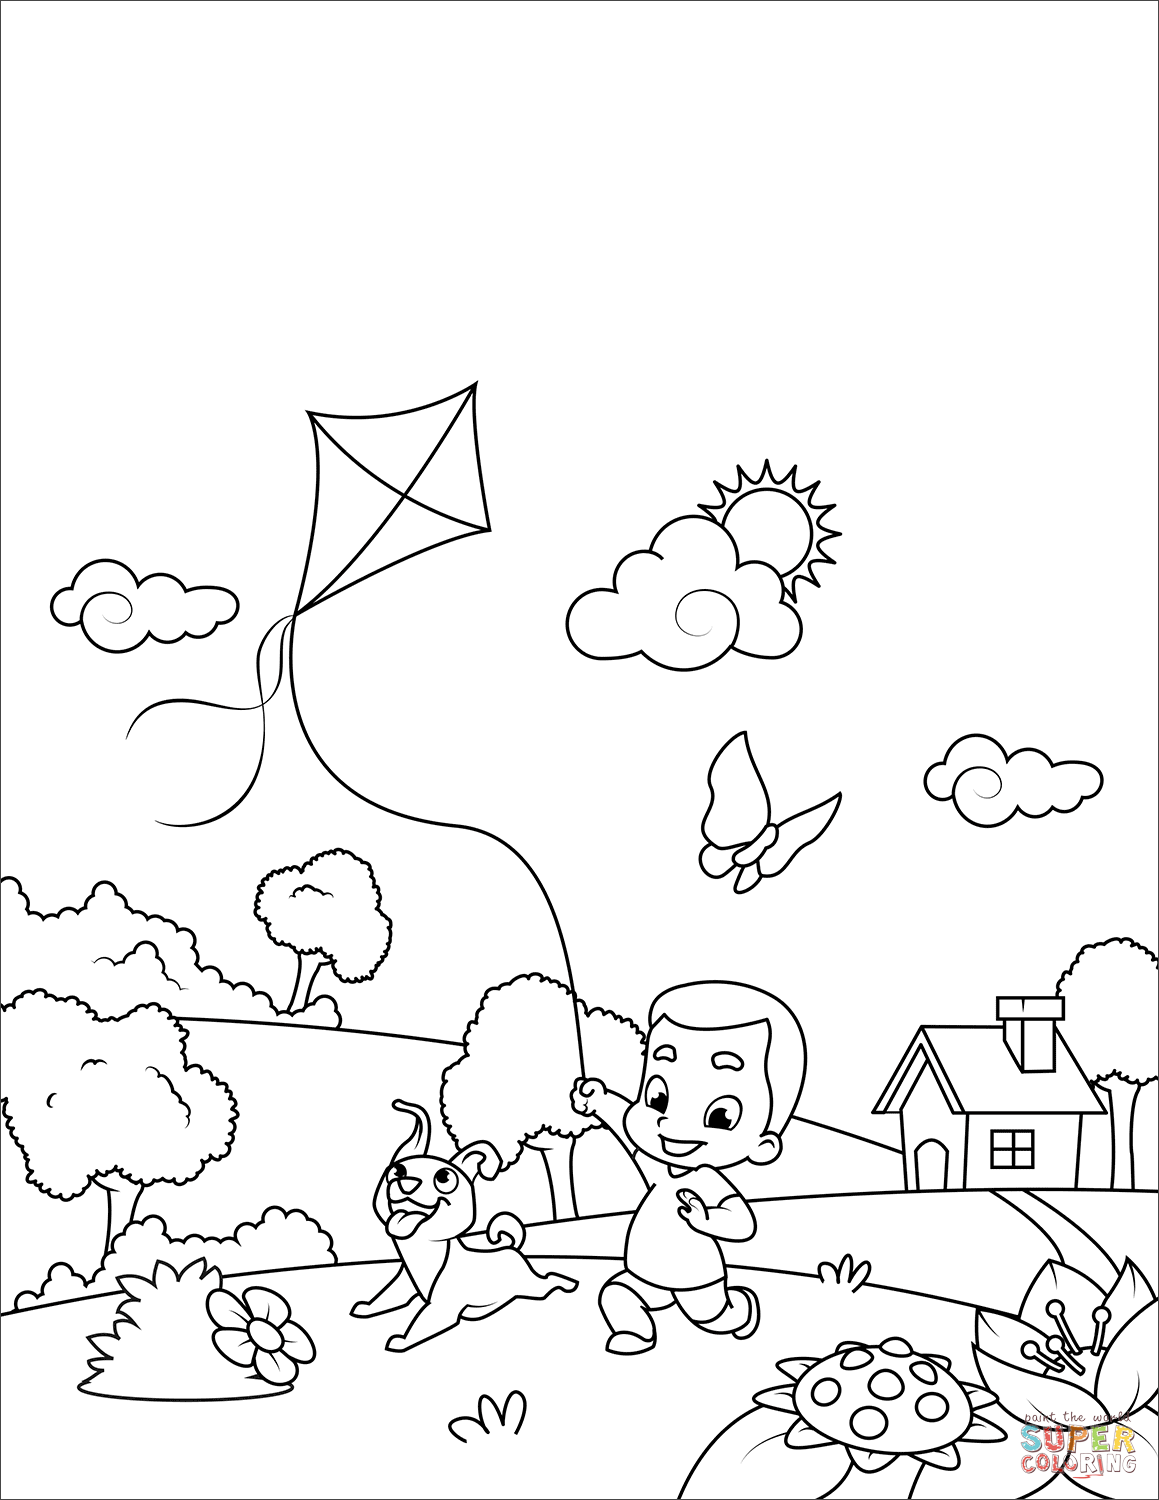 fly a kite coloring music coloring pages for kids sketch coloring page a coloring fly kite